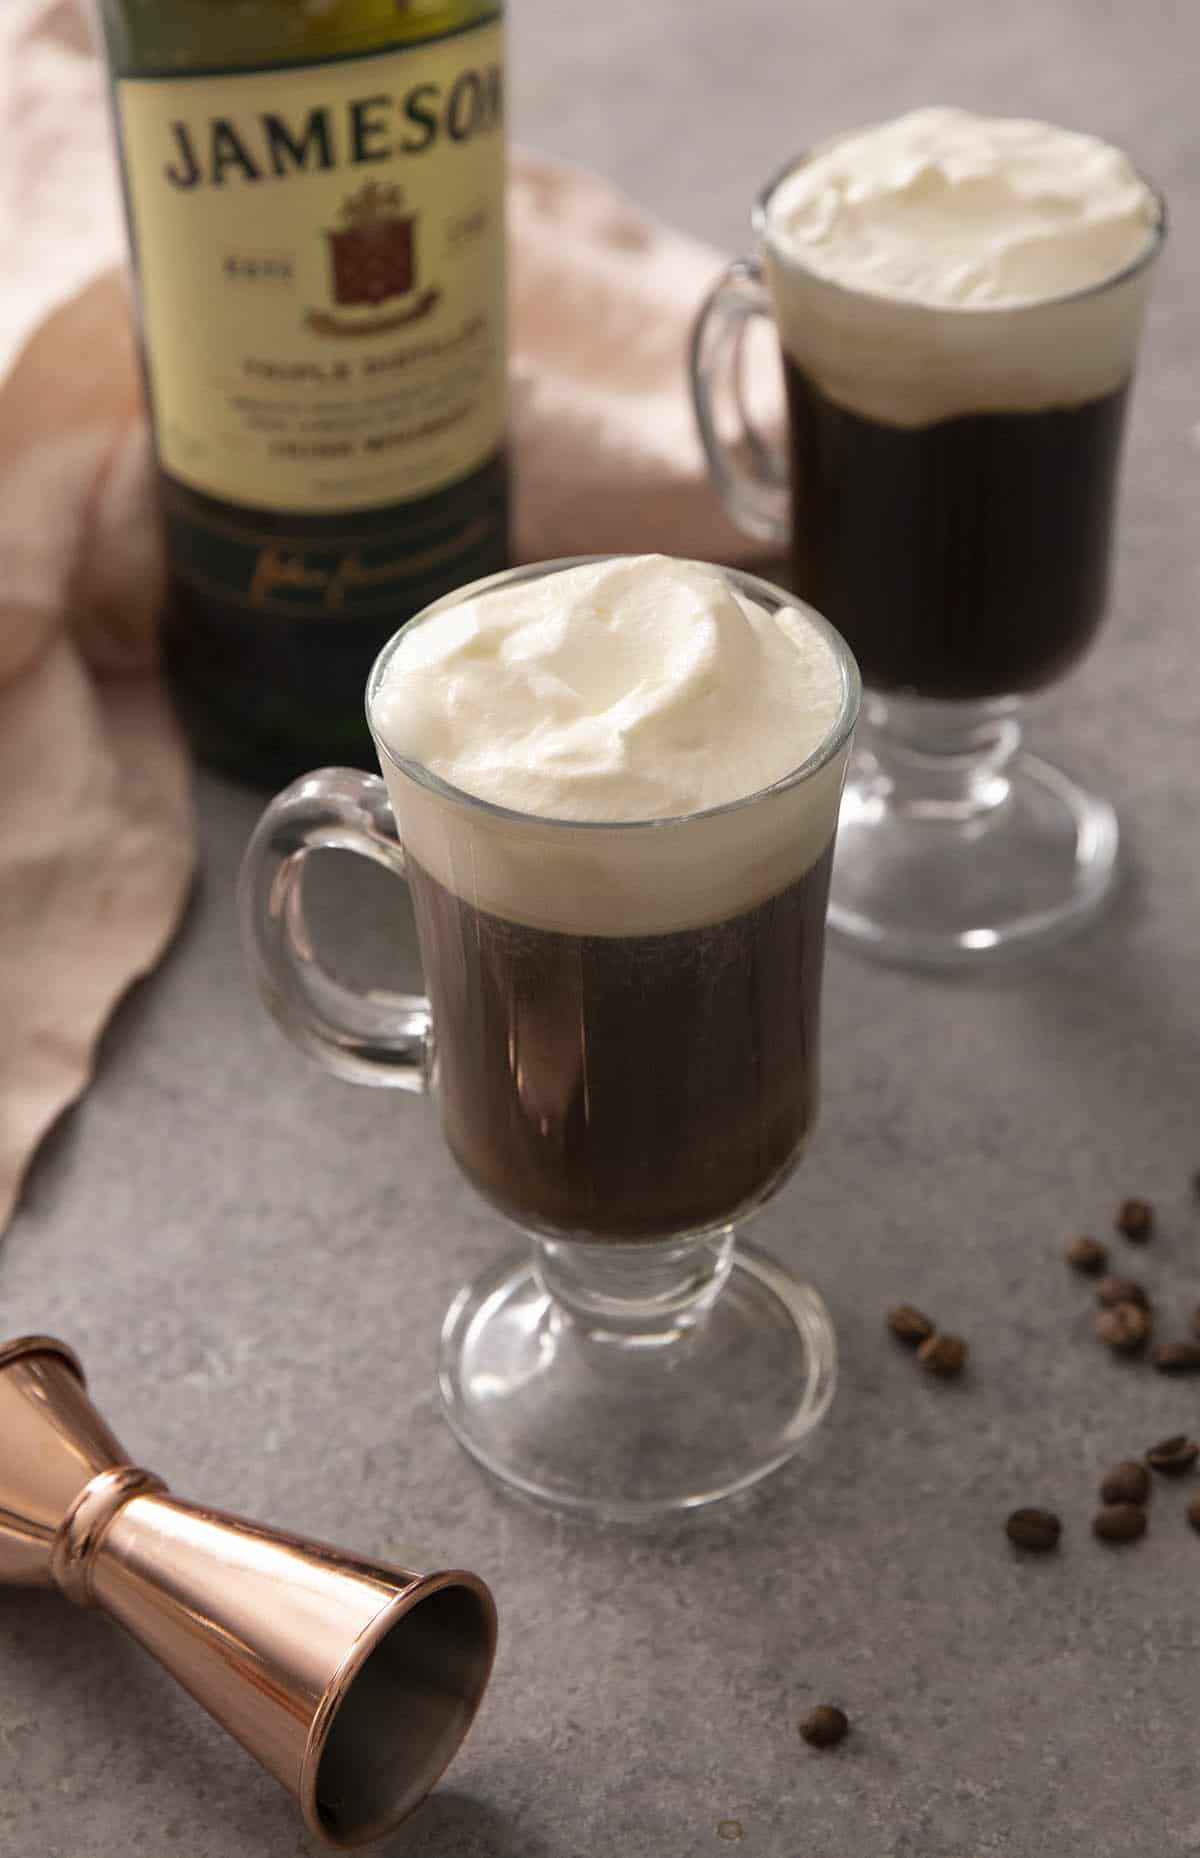 Two mugs on Irish coffee on a work surface with a bottle of whiskey in the background